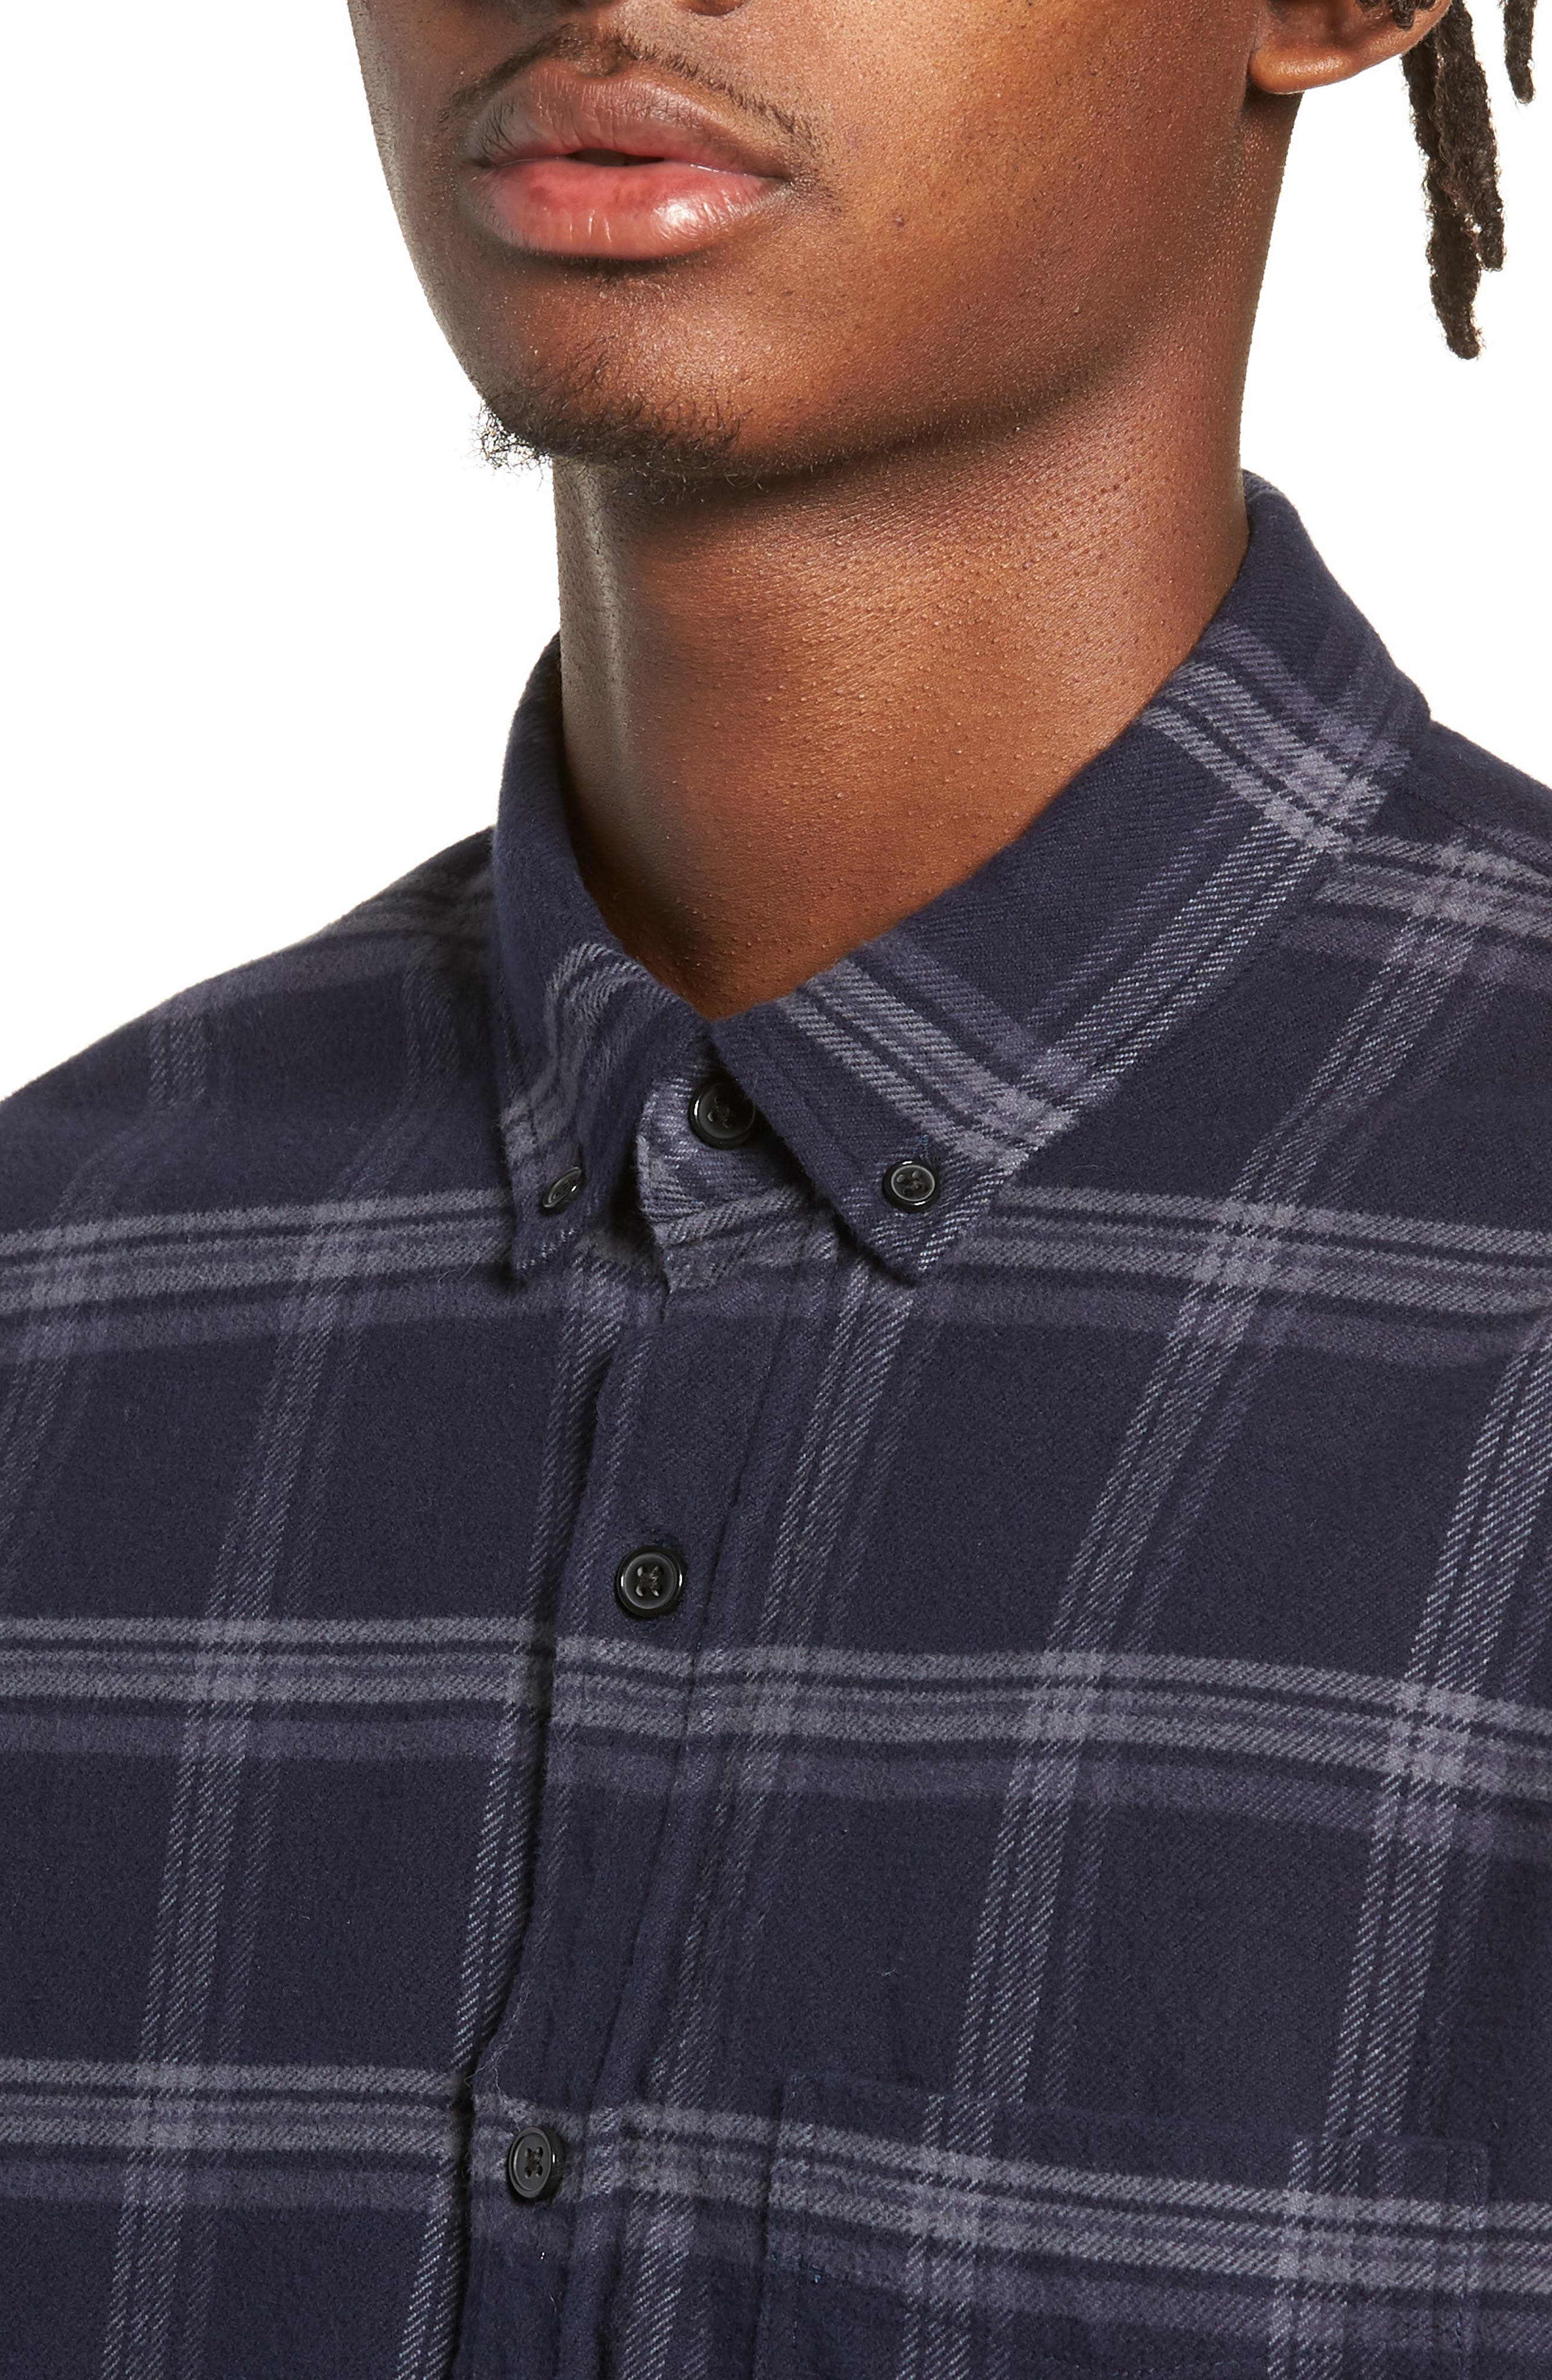 Forrest Slim Fit Plaid Flannel Sport Shirt,                             Alternate thumbnail 2, color,                             NAVY/HEATHERED CHARCOAL